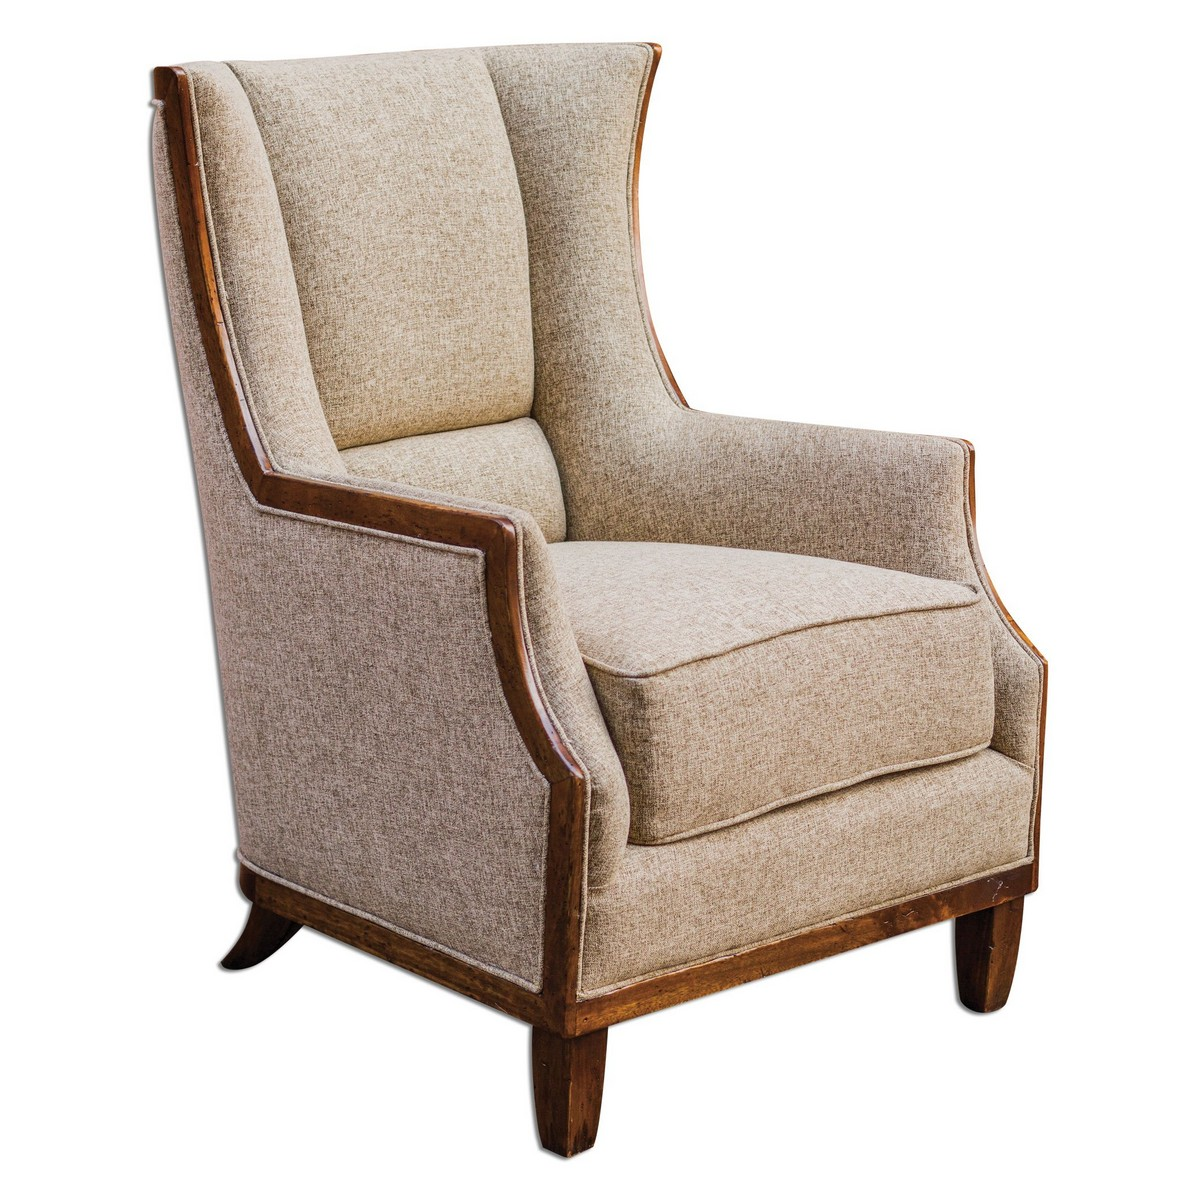 Tweed Chair Uttermost Burbank Tweed Wing Chair Uttermost 23613